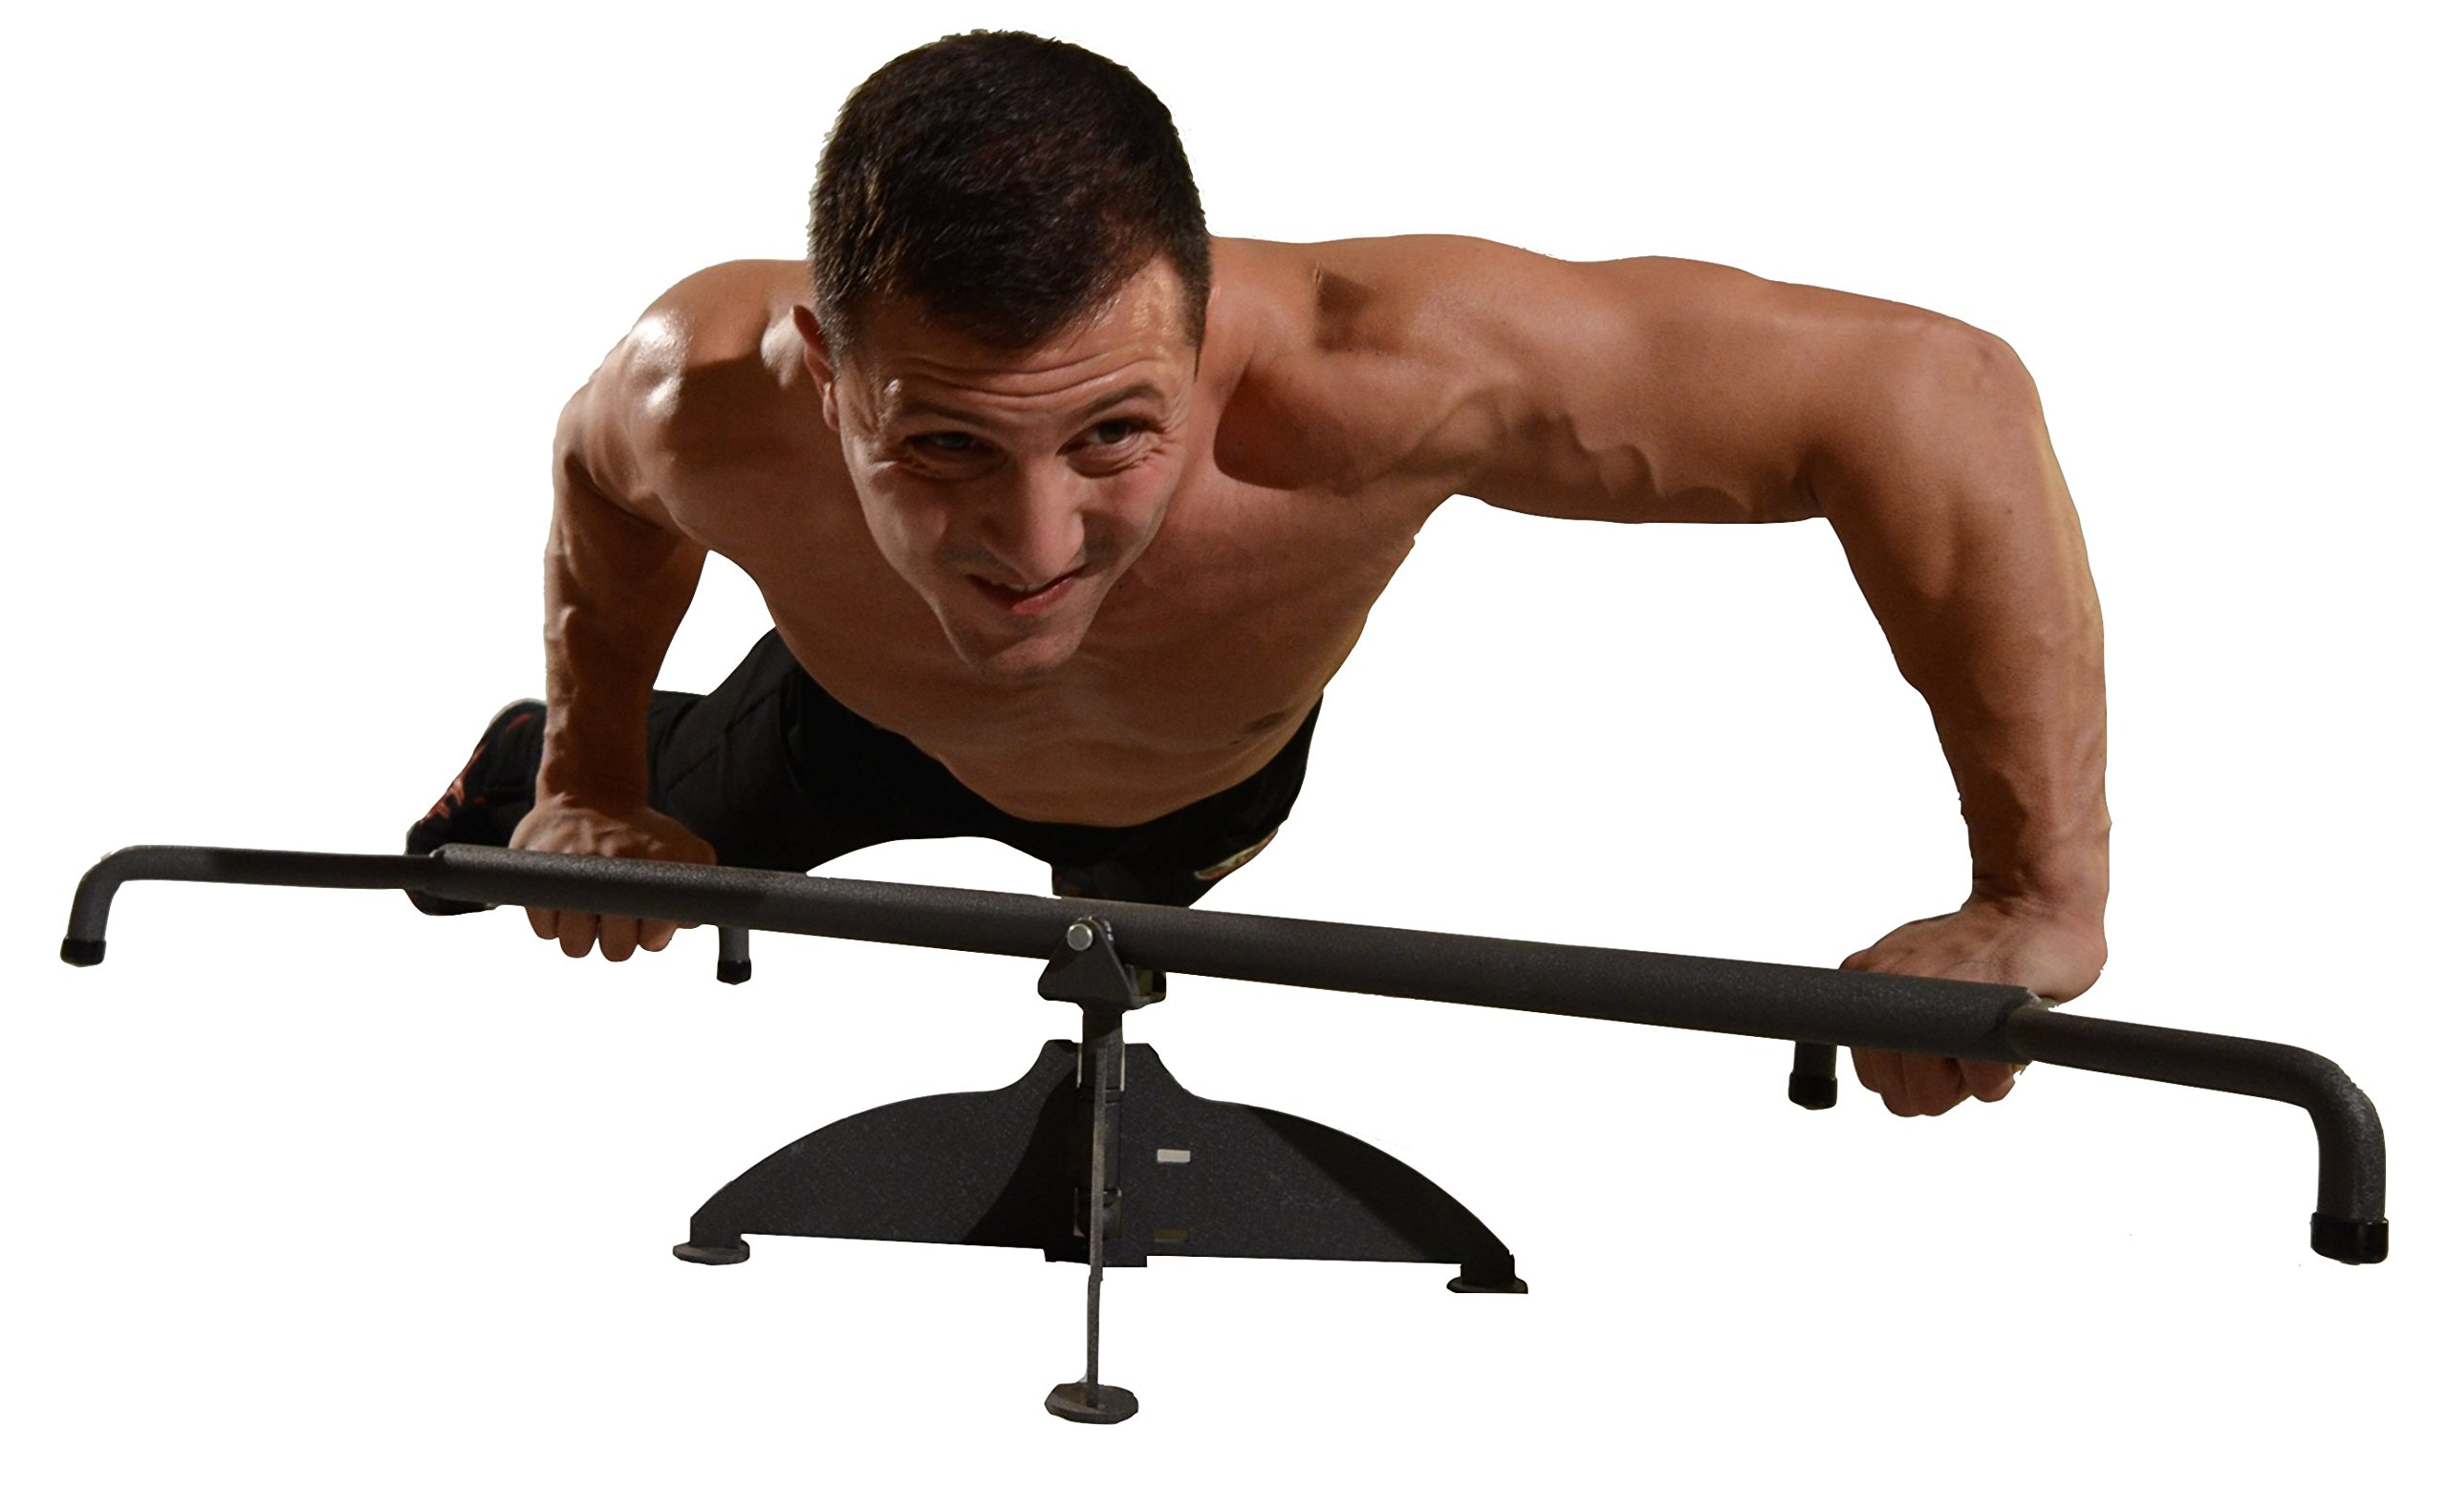 Suples Spartan Bar + WORKOUT DVD - push ps, abs, abdominal workout, full body workout, sit ups, perfect pushup, push up bar, bulgarian bag, wrestling, mma, chest, fitness, training, arm workout. by Suples (Image #3)